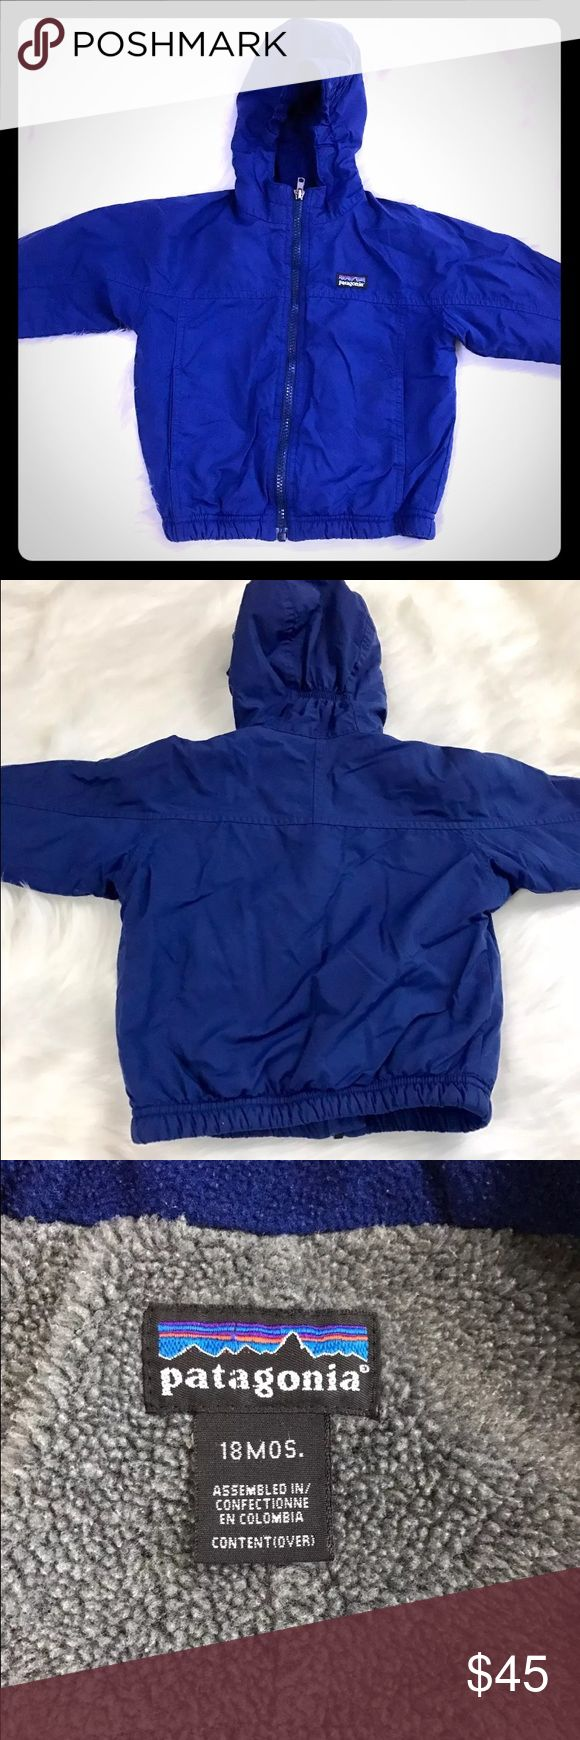 Patagonia Baby Fleece Lined Jacket Adorable Patagonia Baby Fleece Lined Hooded Jacket.  Thick pile fleece inside to keep baby warm and cozy. Lining 100% Polyester. Shell: 100% Nylon.  Gently worn. Name tag has name written on it but can easily be covered with name sticker. Patagonia Jackets & Coats